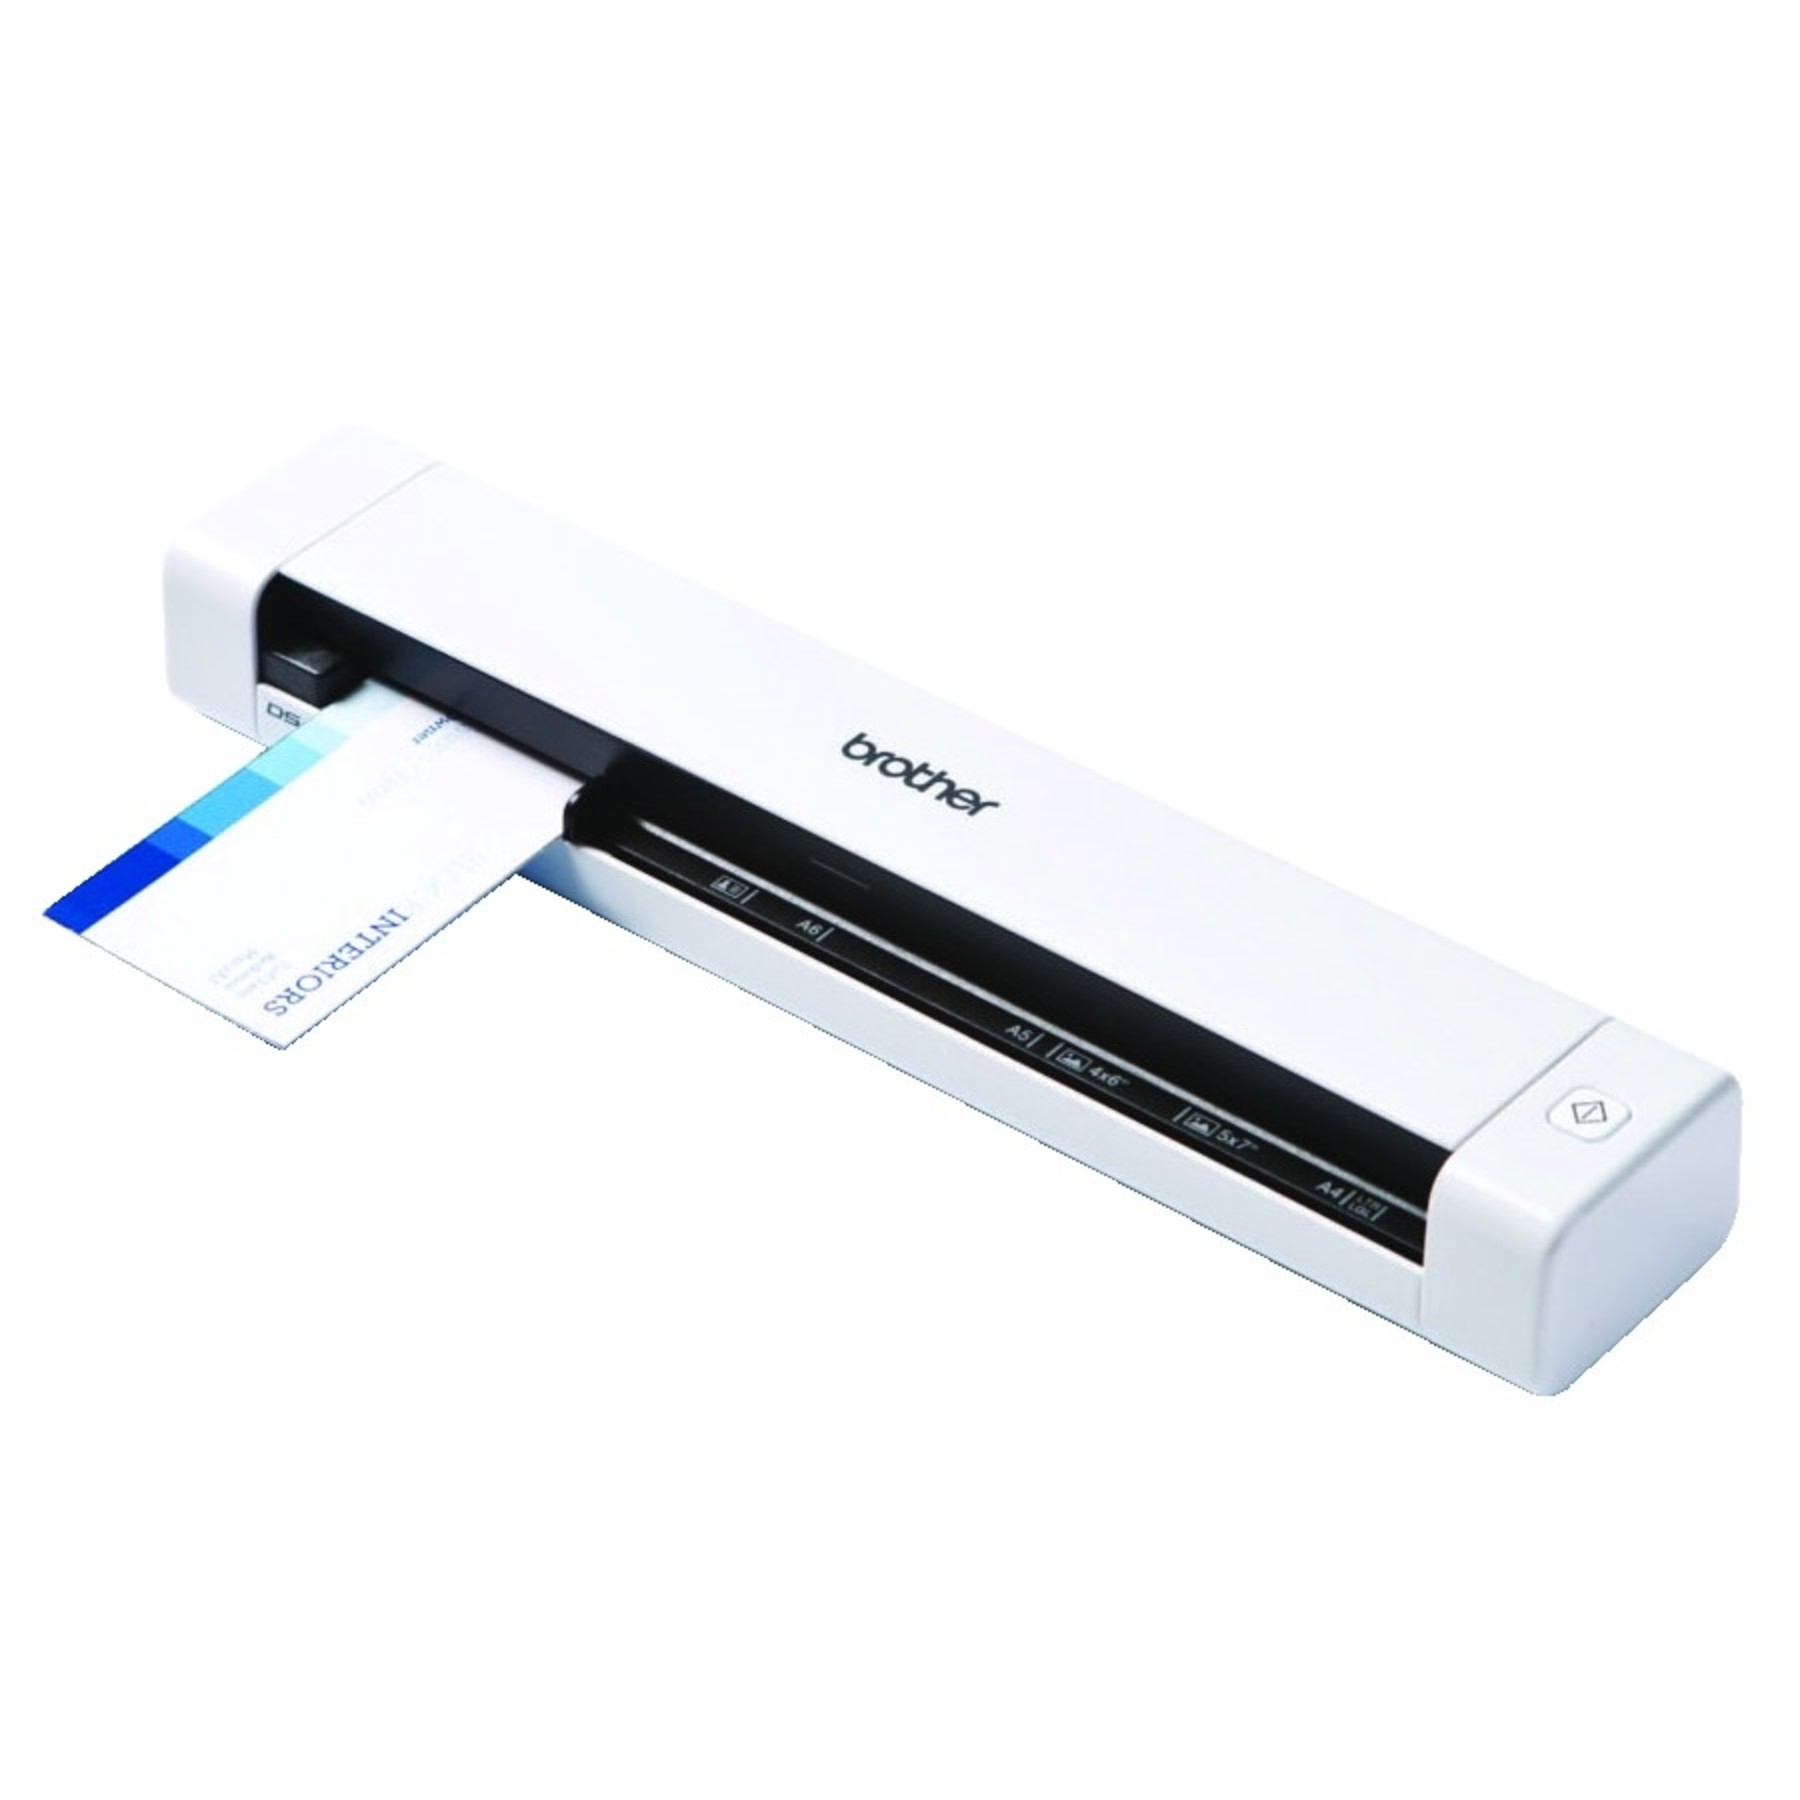 brother ds 620 mobile color page scanner - brother ds620 a4 usb portable mobile document colour